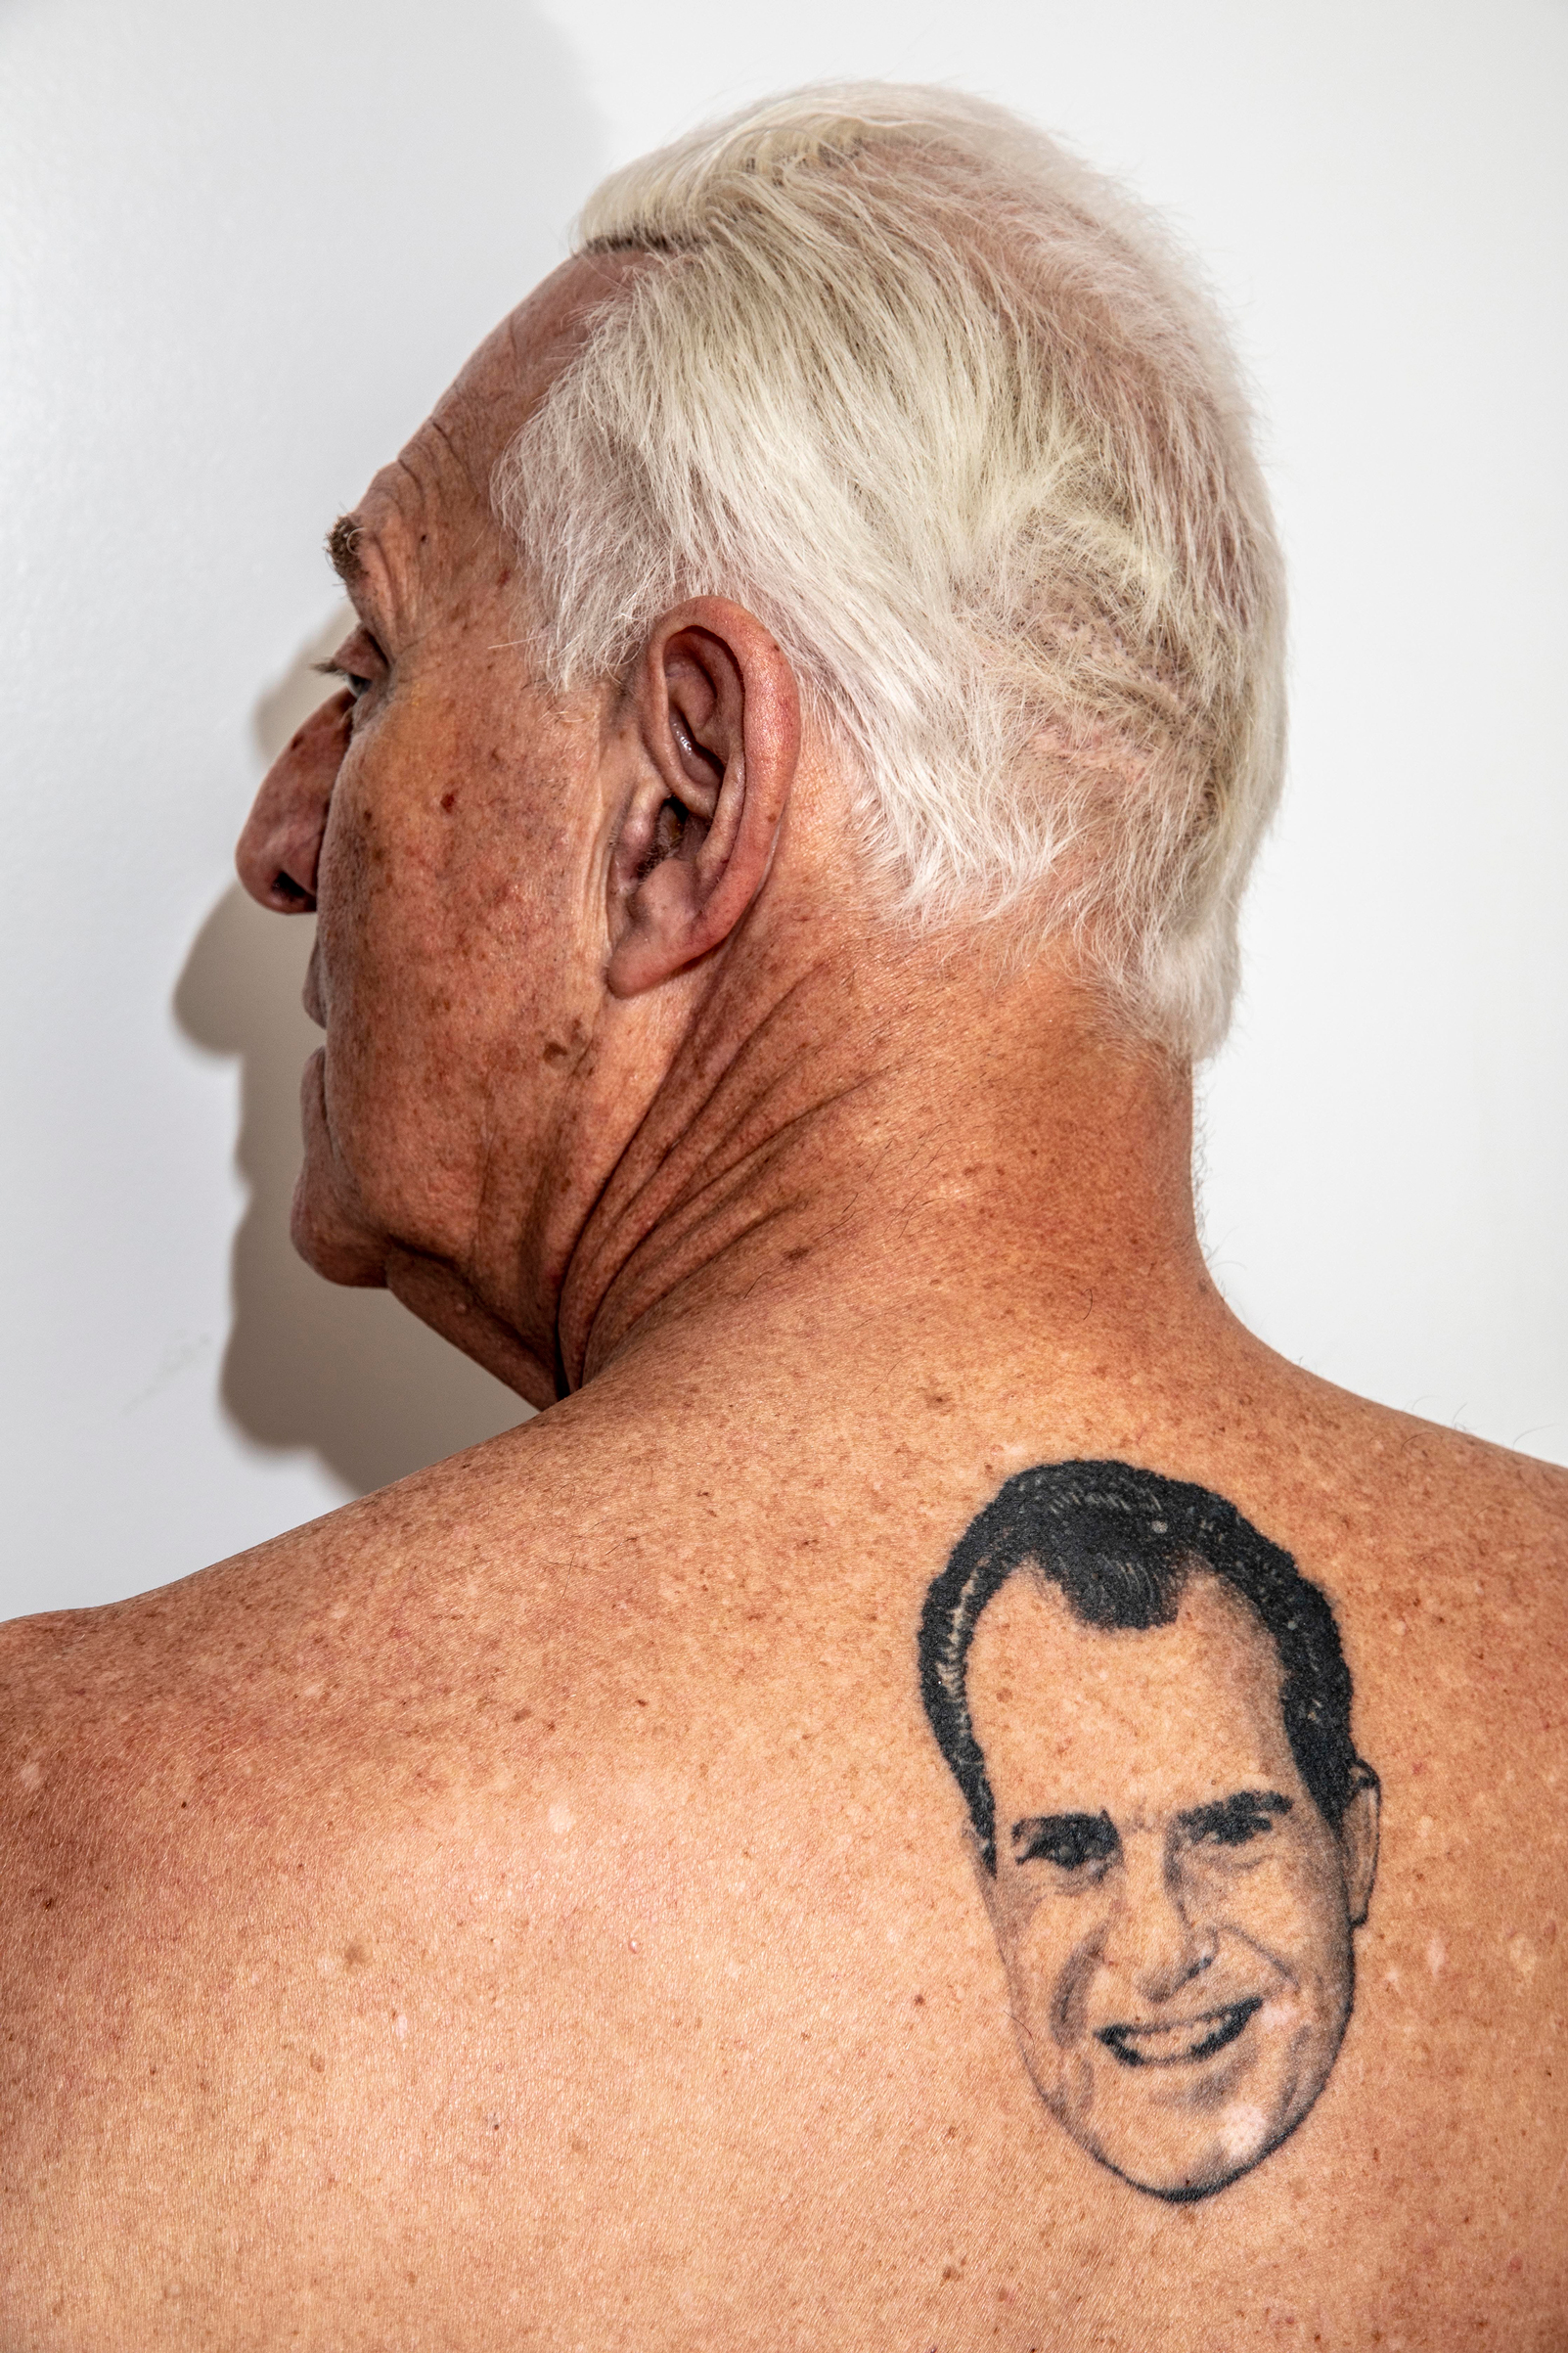 Stone shows off his Richard Nixon tattoo at his apartment i​n New York in June 2018.